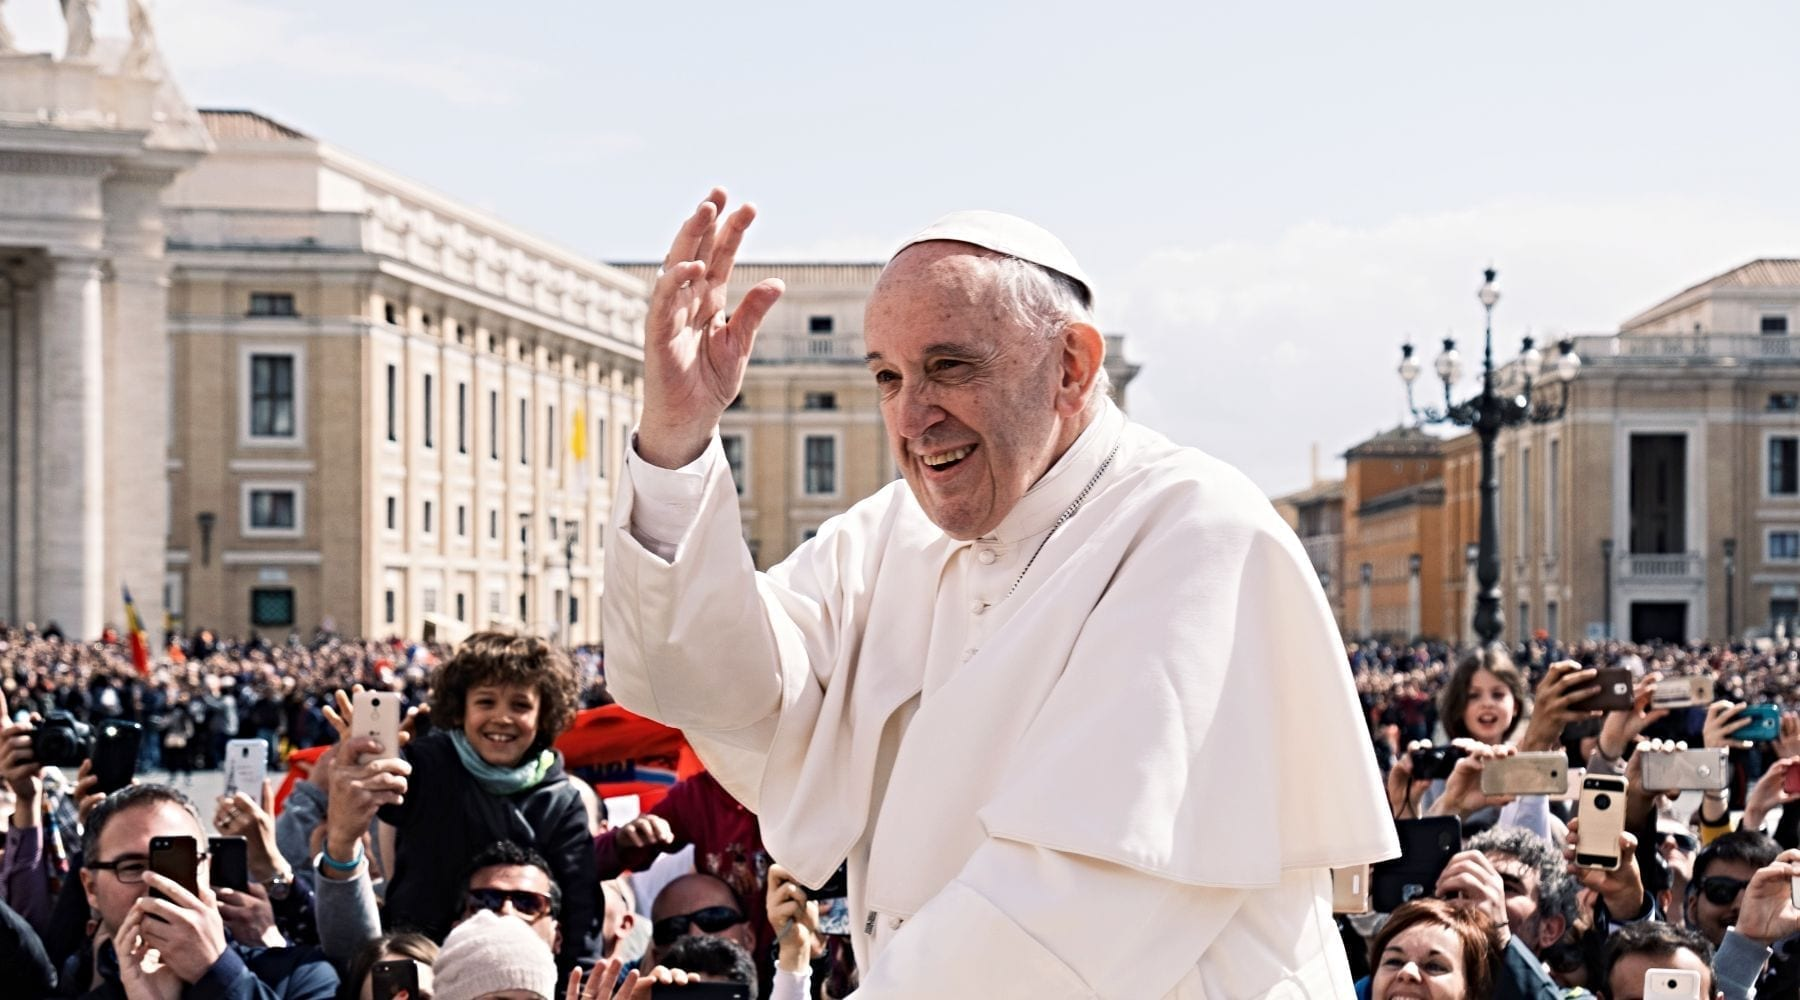 Pope Francis waving in crowd outside